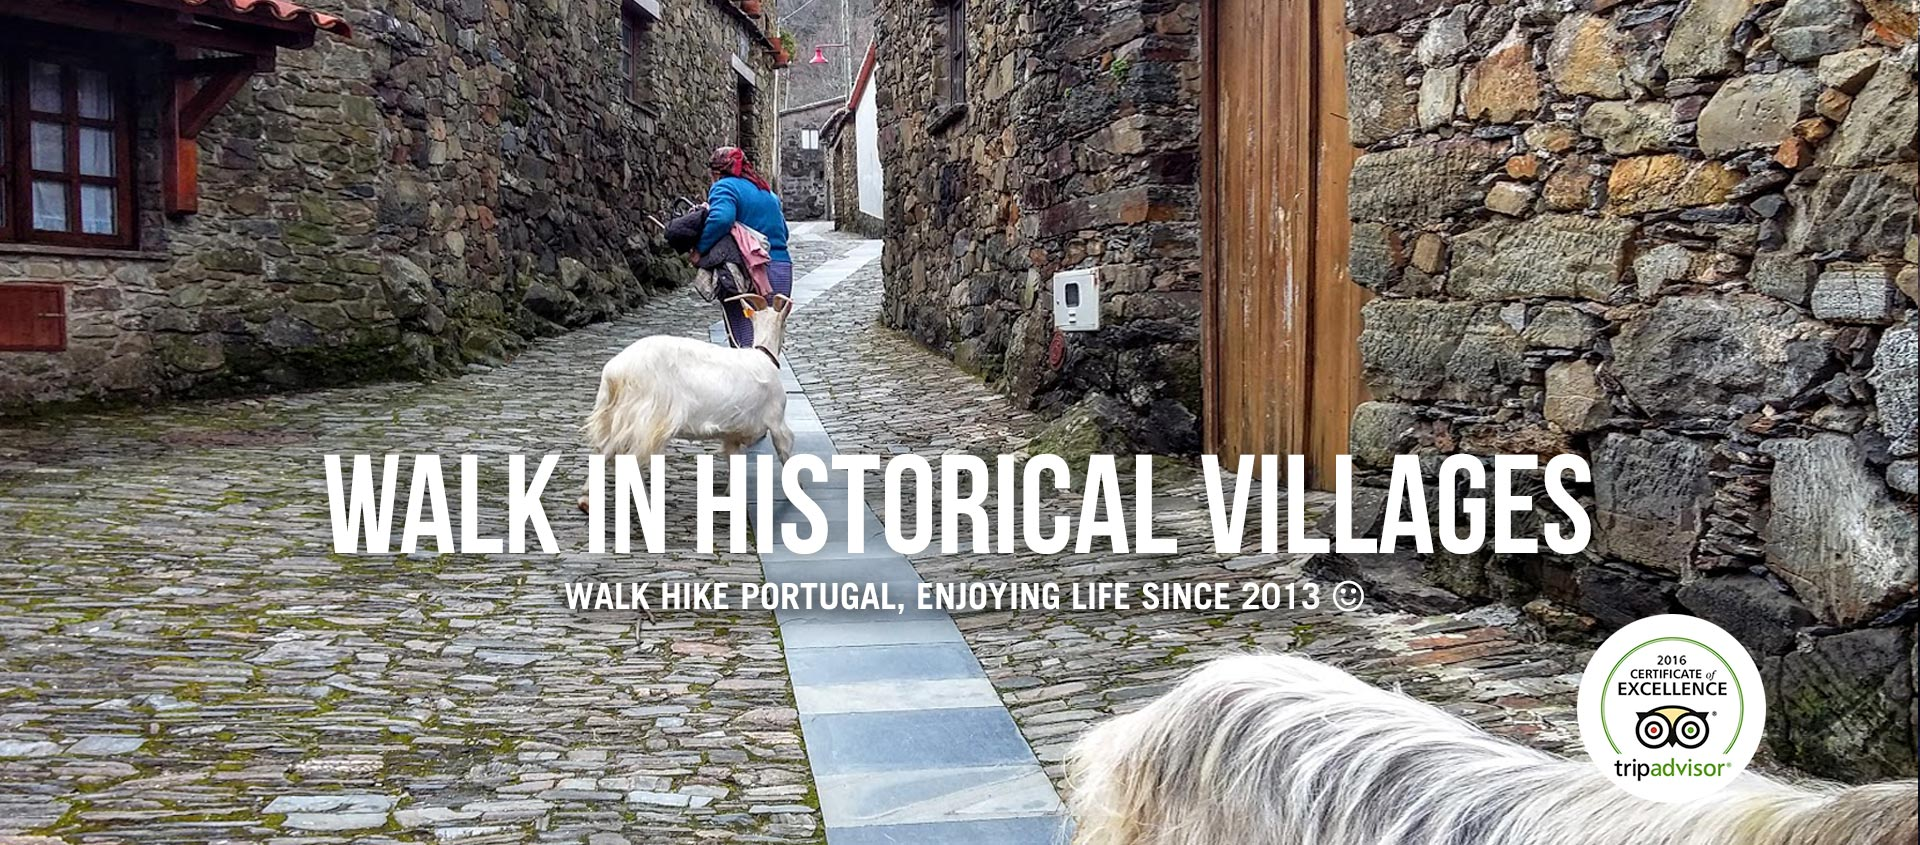 Walk in Historical Villages